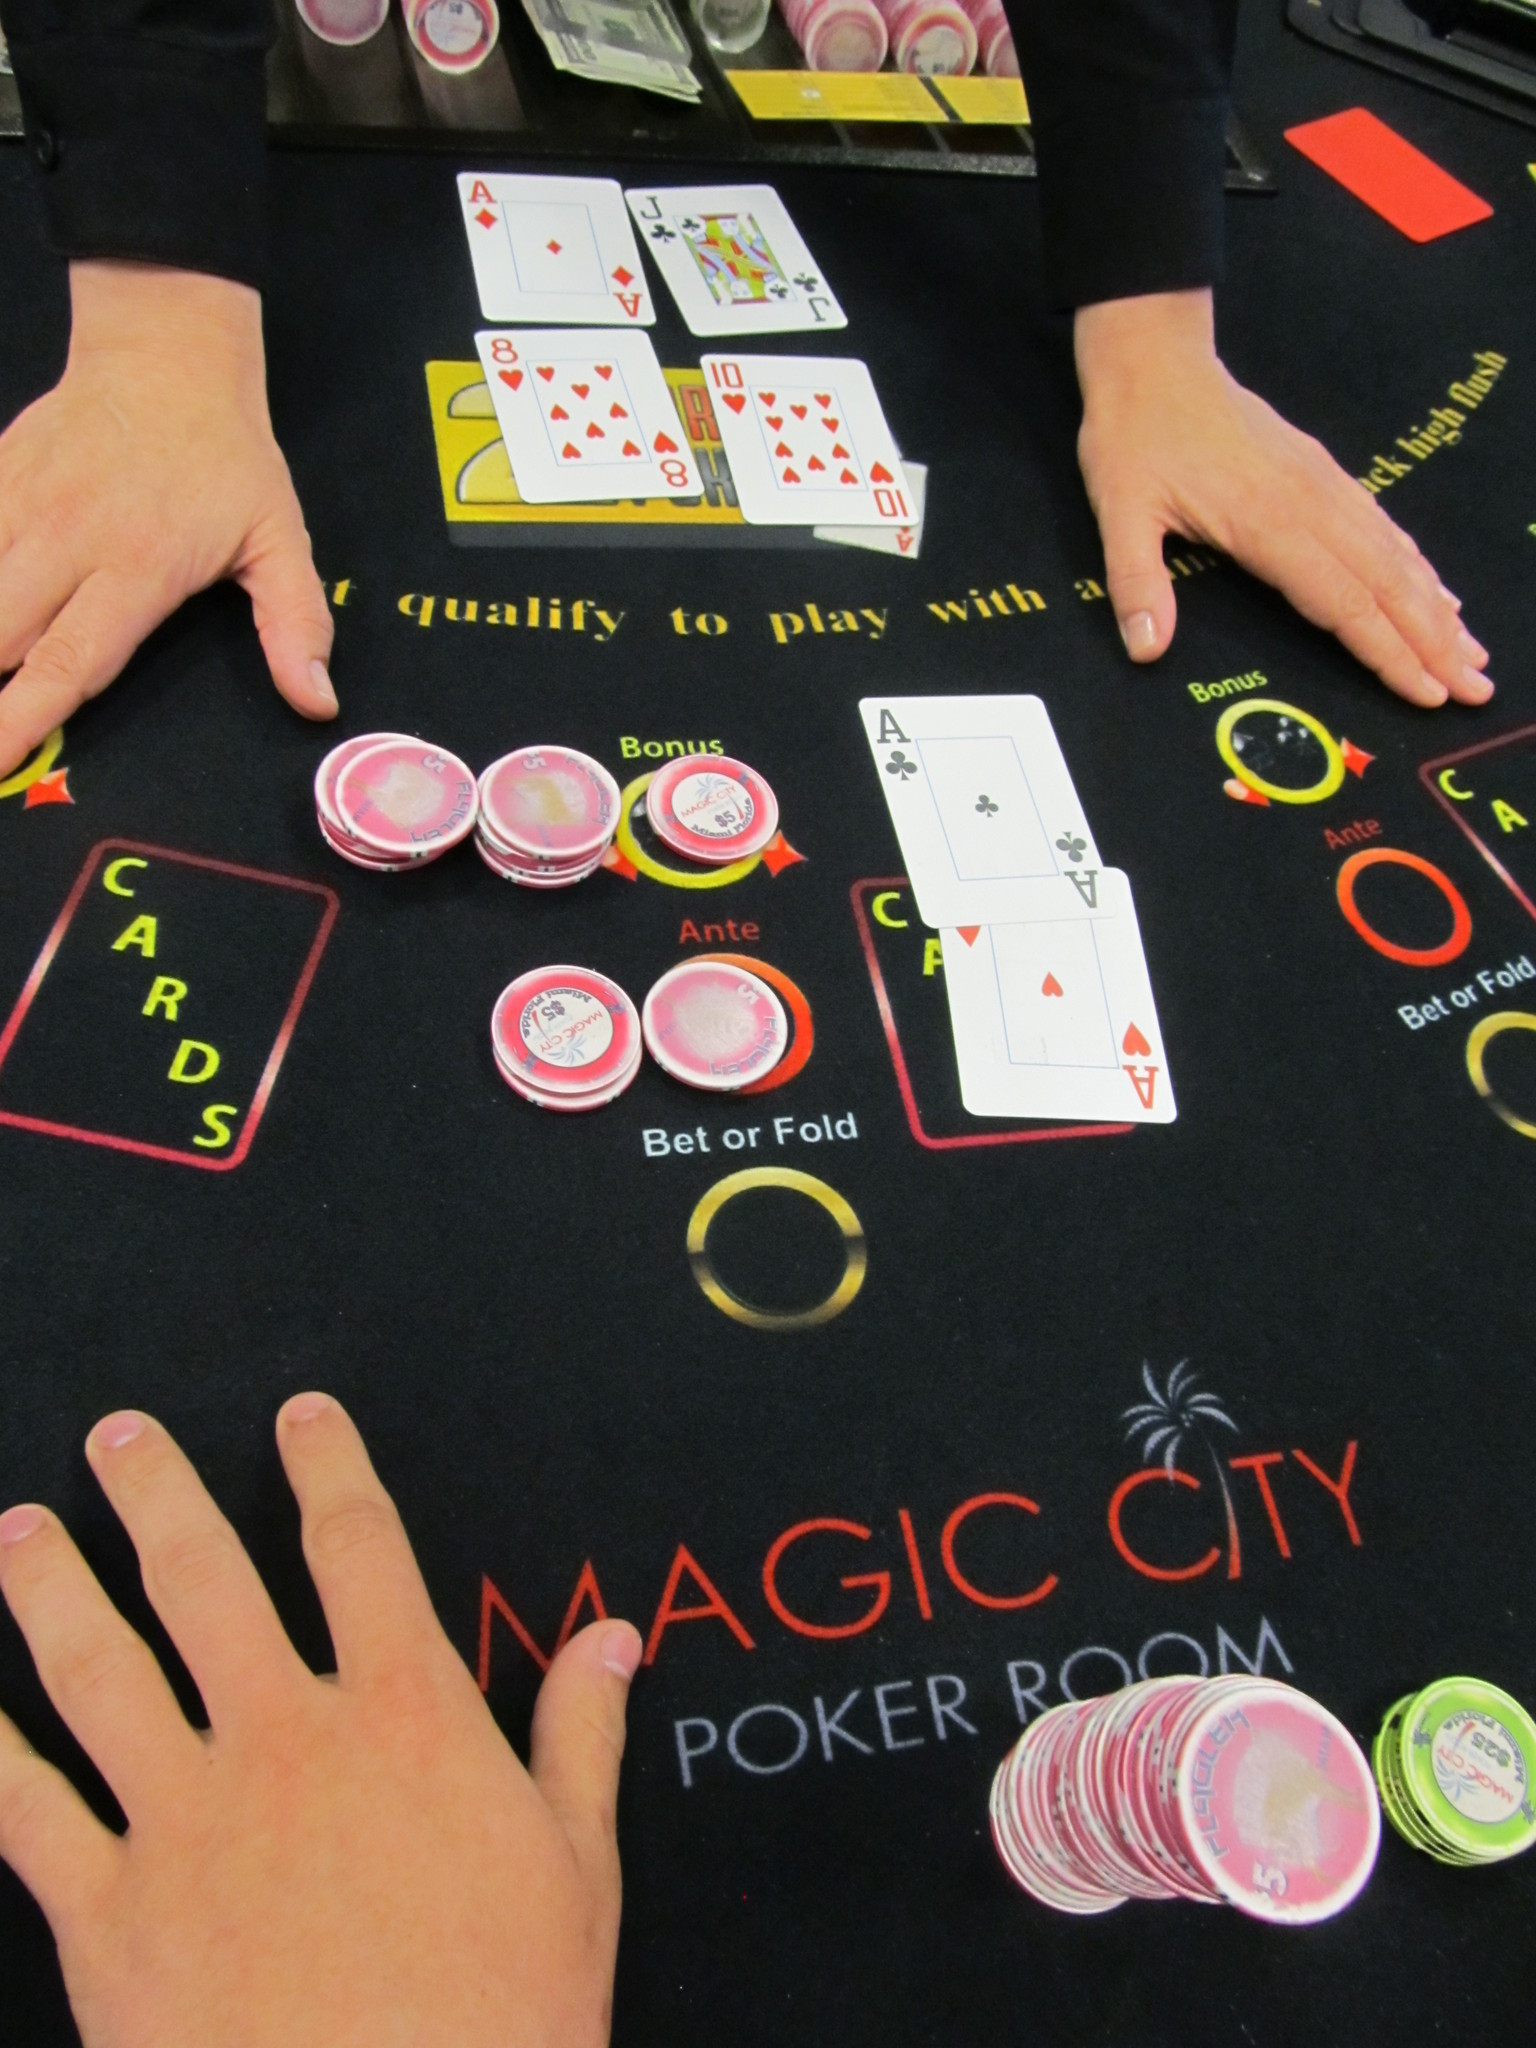 Magic city casino poker casino bus rides